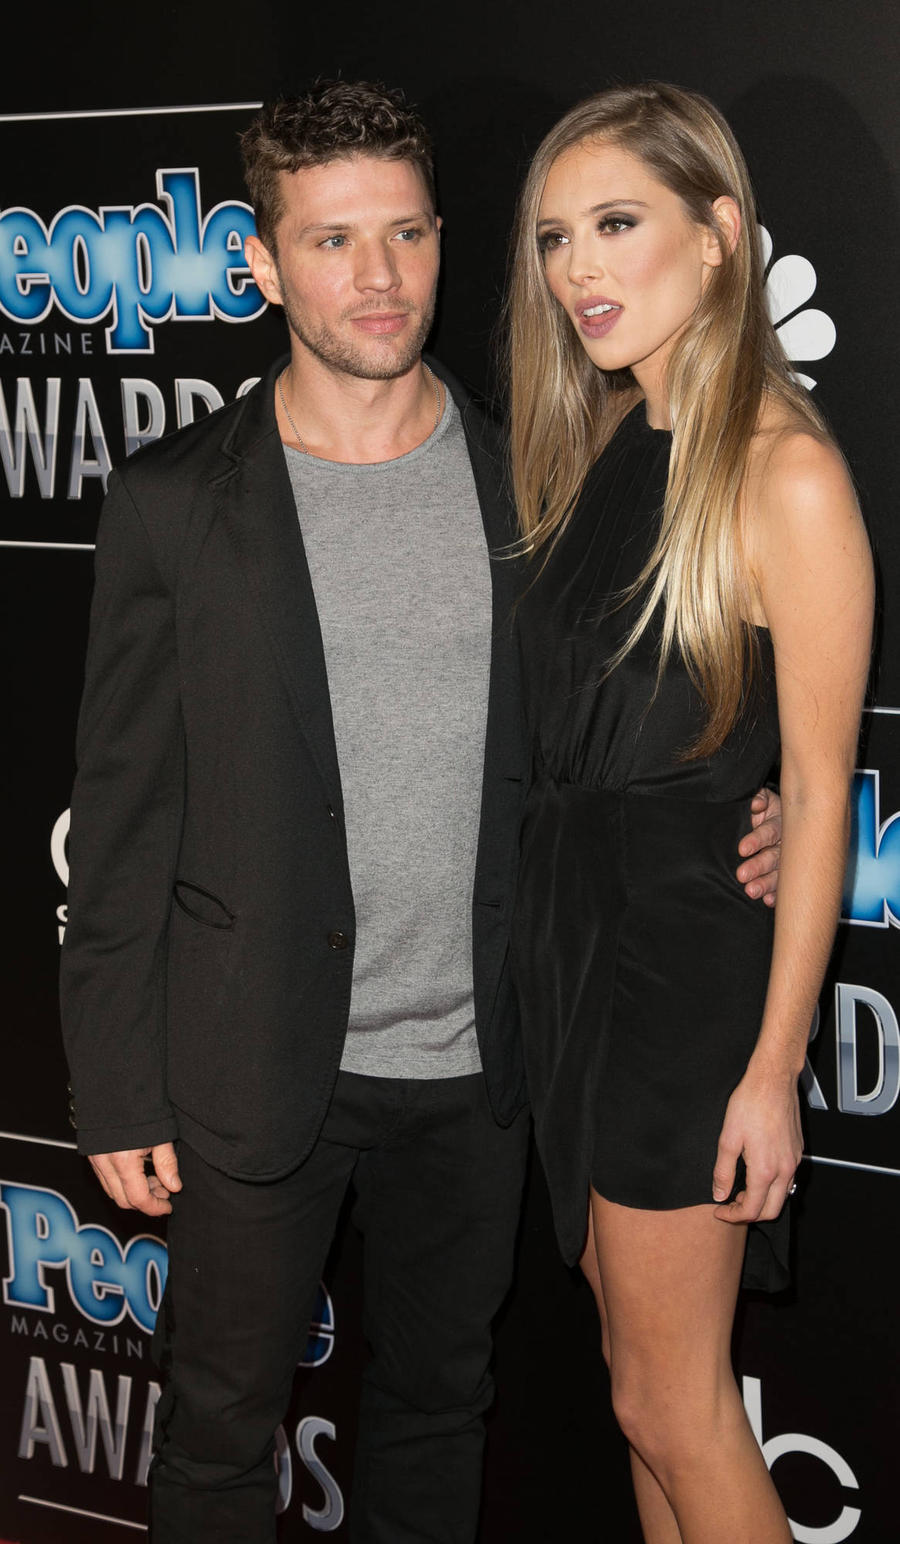 Ryan Phillippe Splits From Fiancee - Report